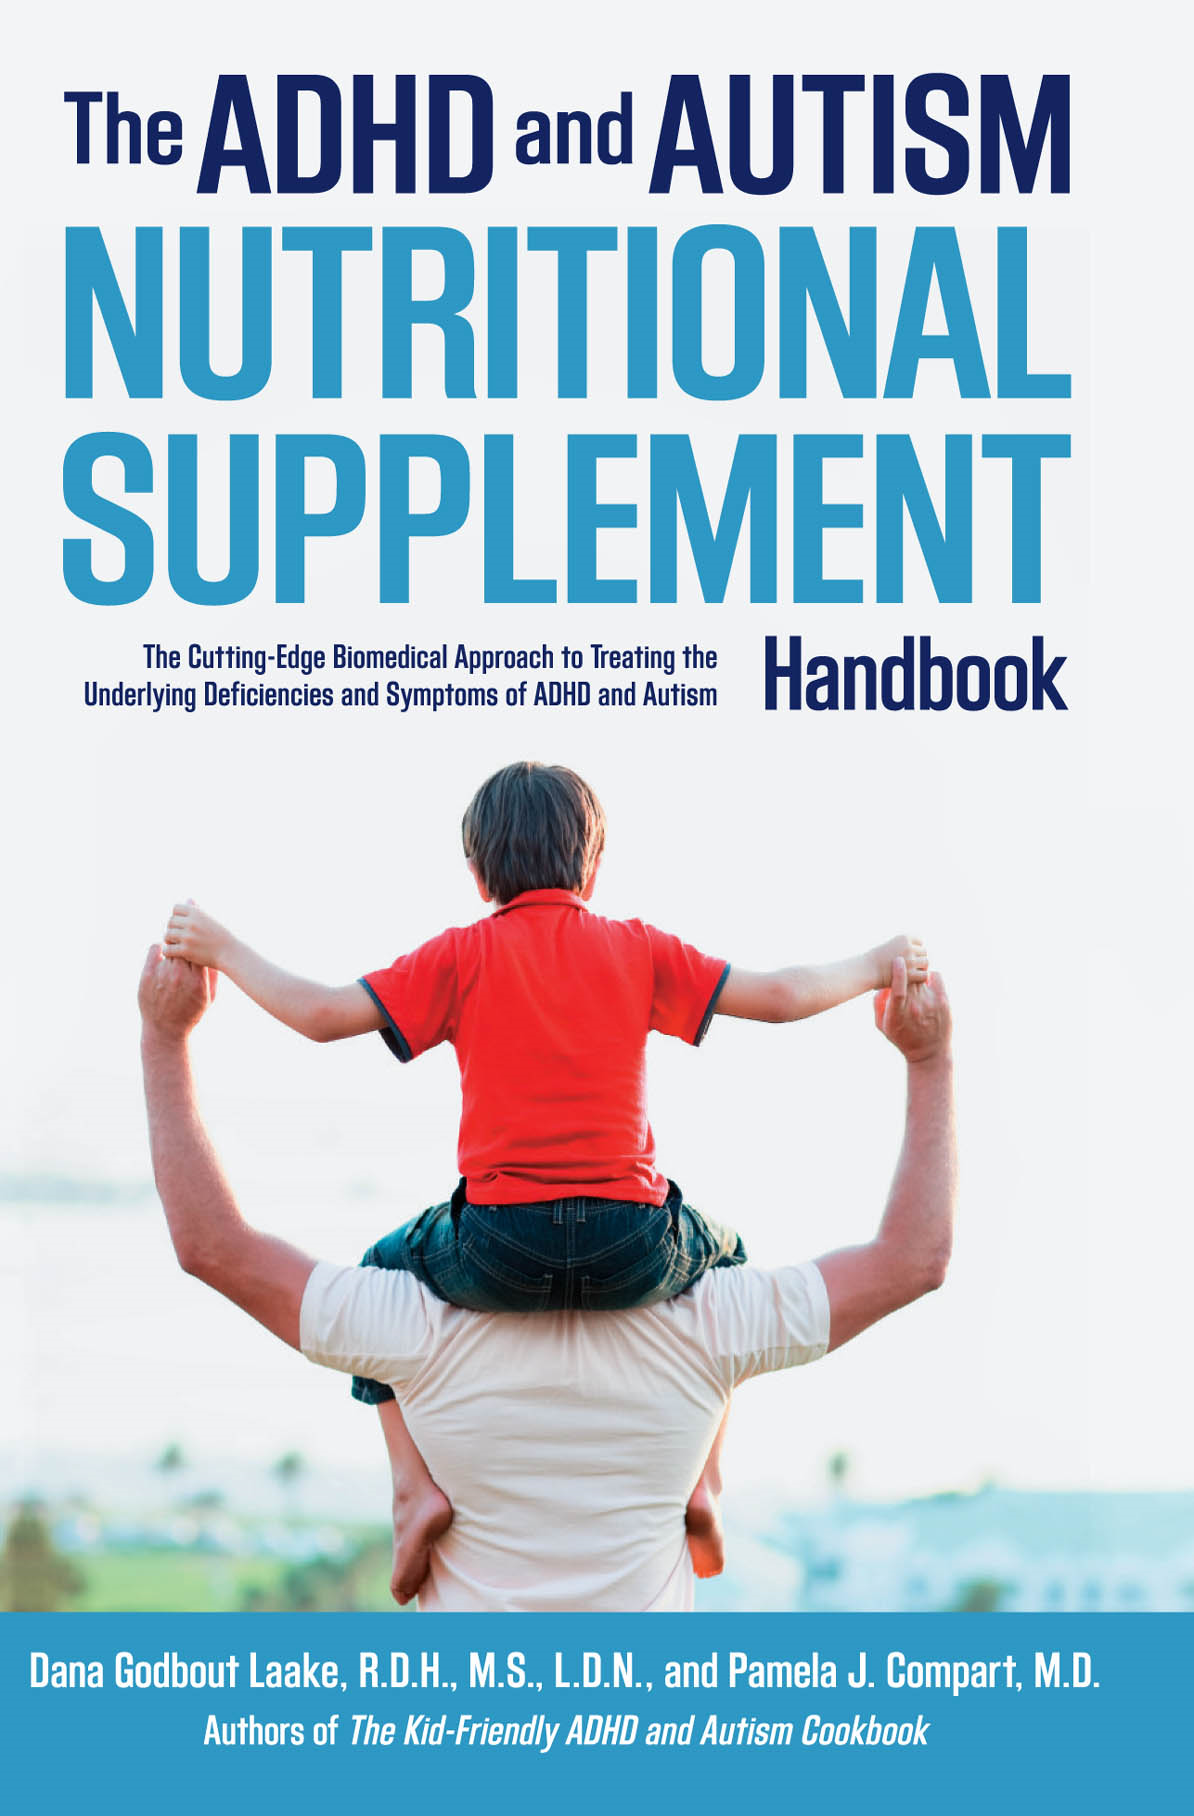 The ADHD and Autism Nutritional Supplement Handbook